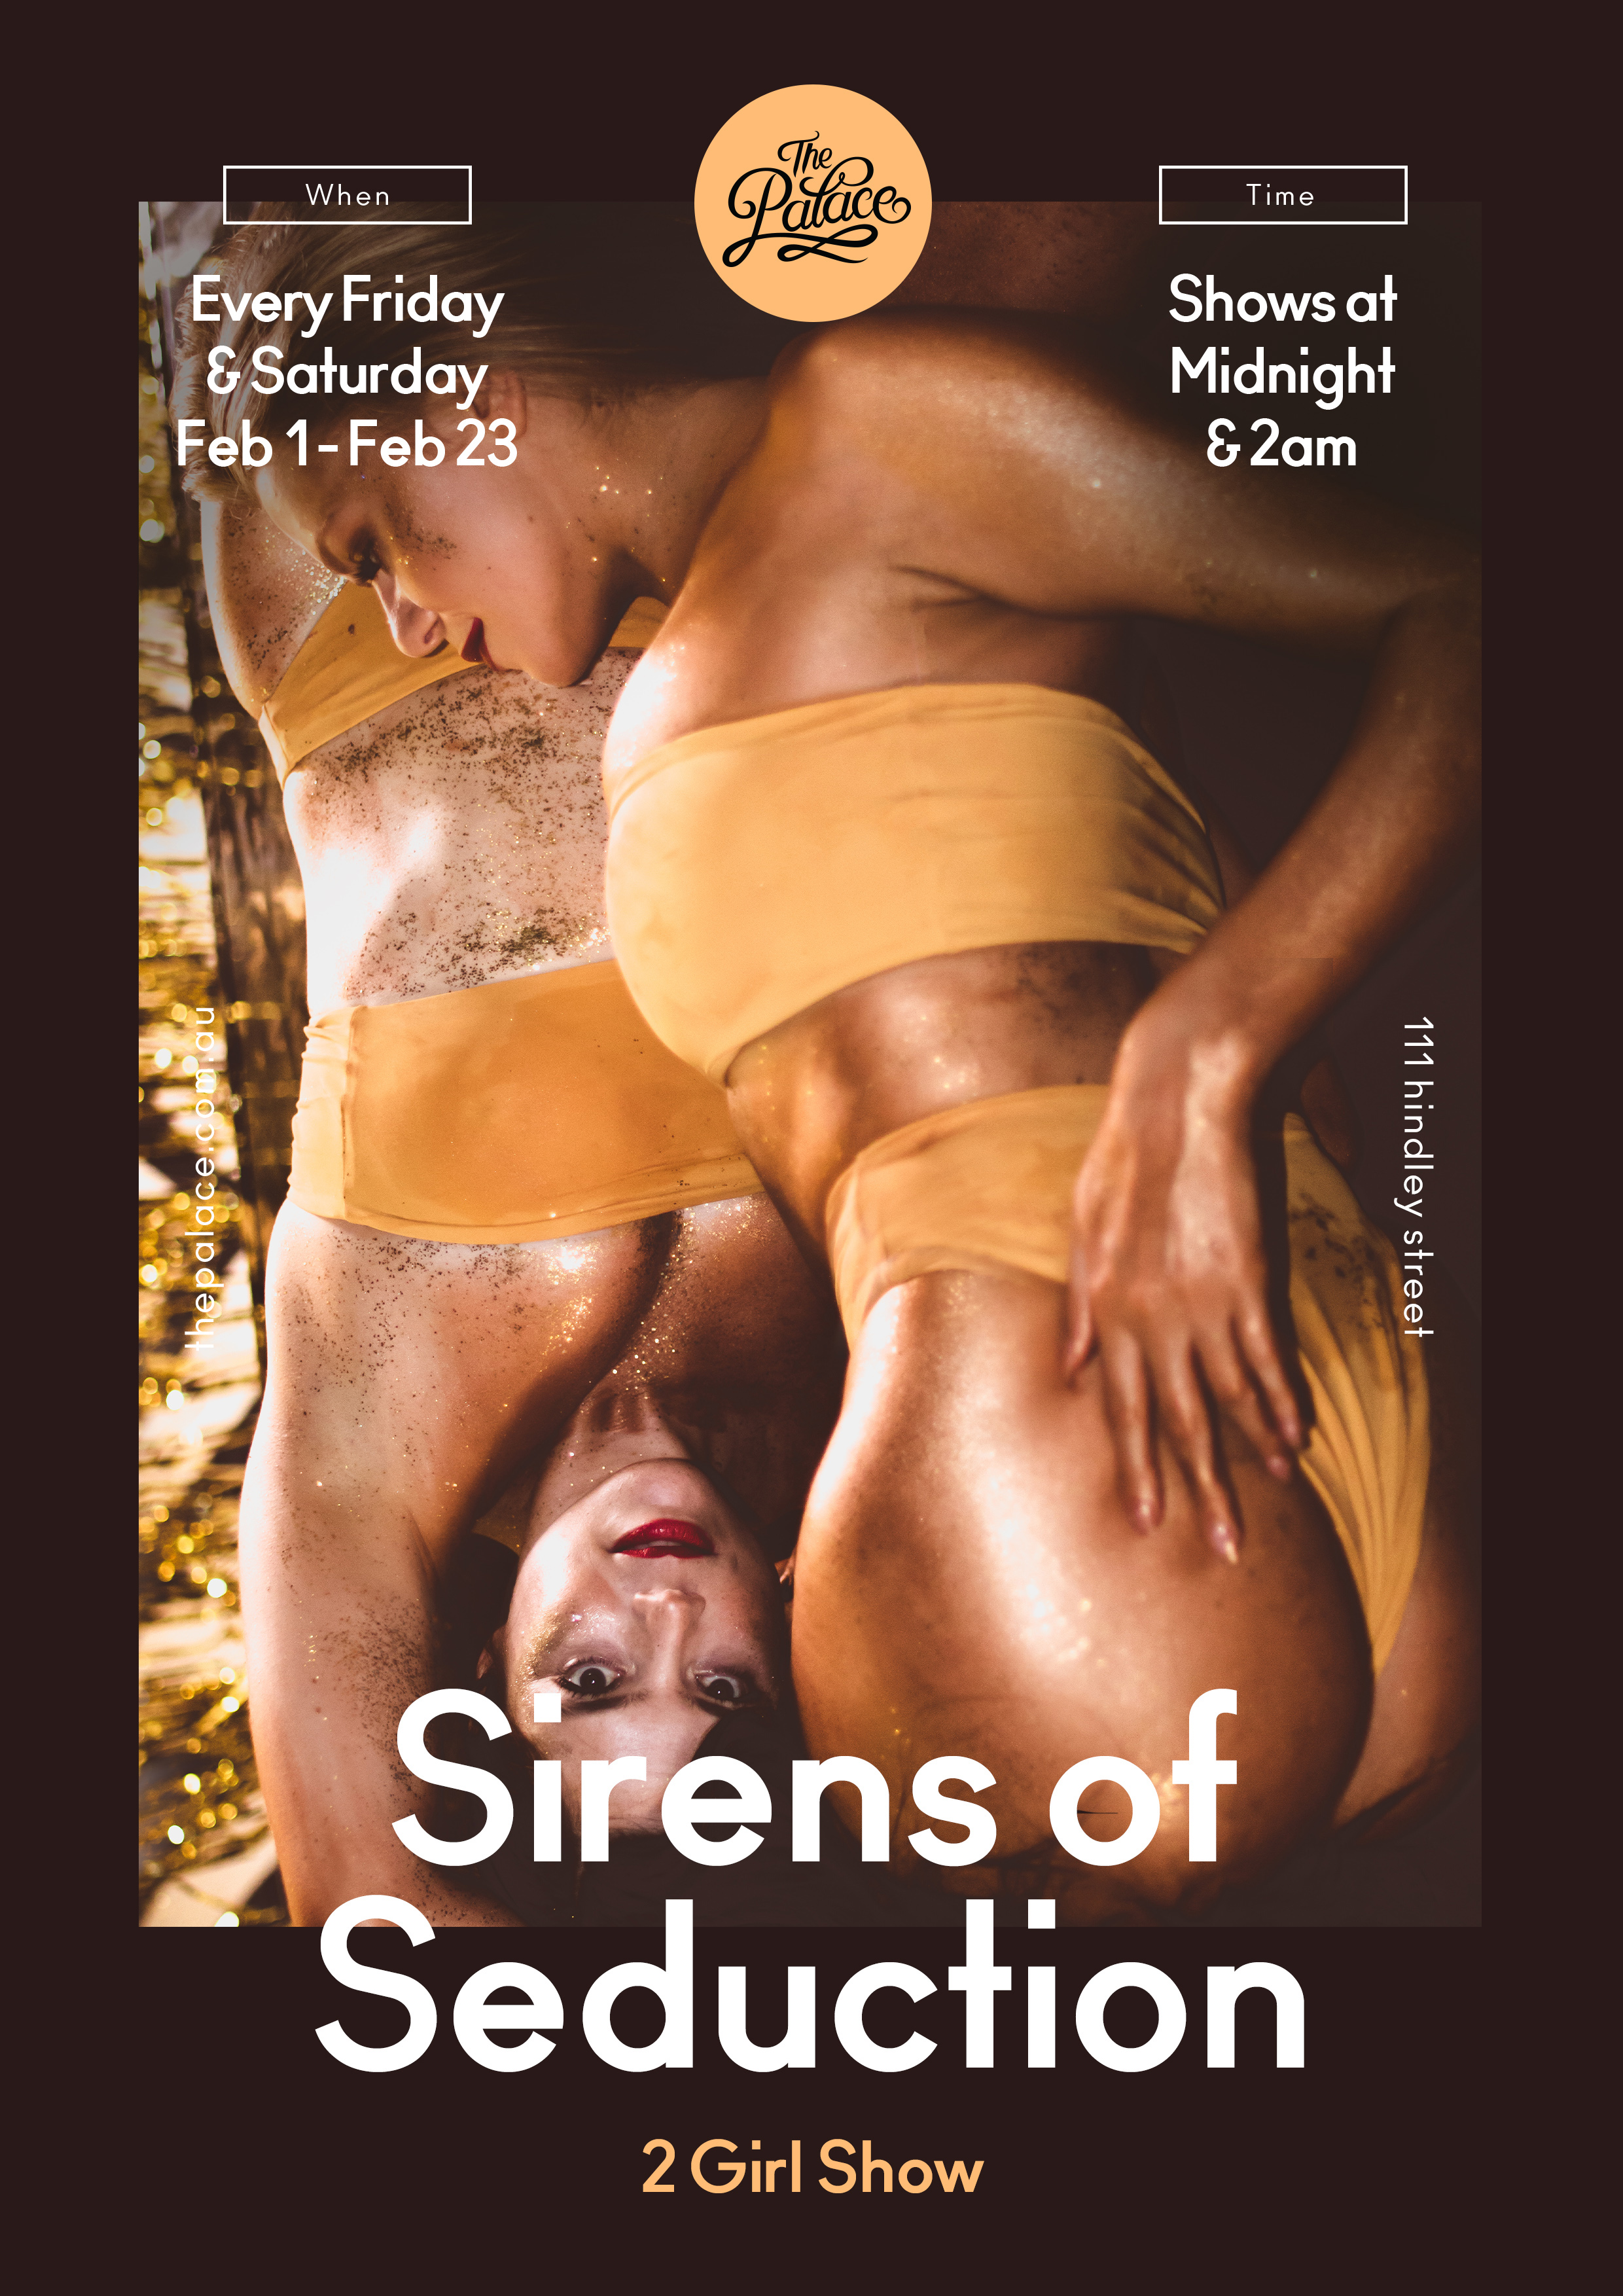 Sirens of Seduction - The Palace Adelaide, 111 Hindley St, Adelaide